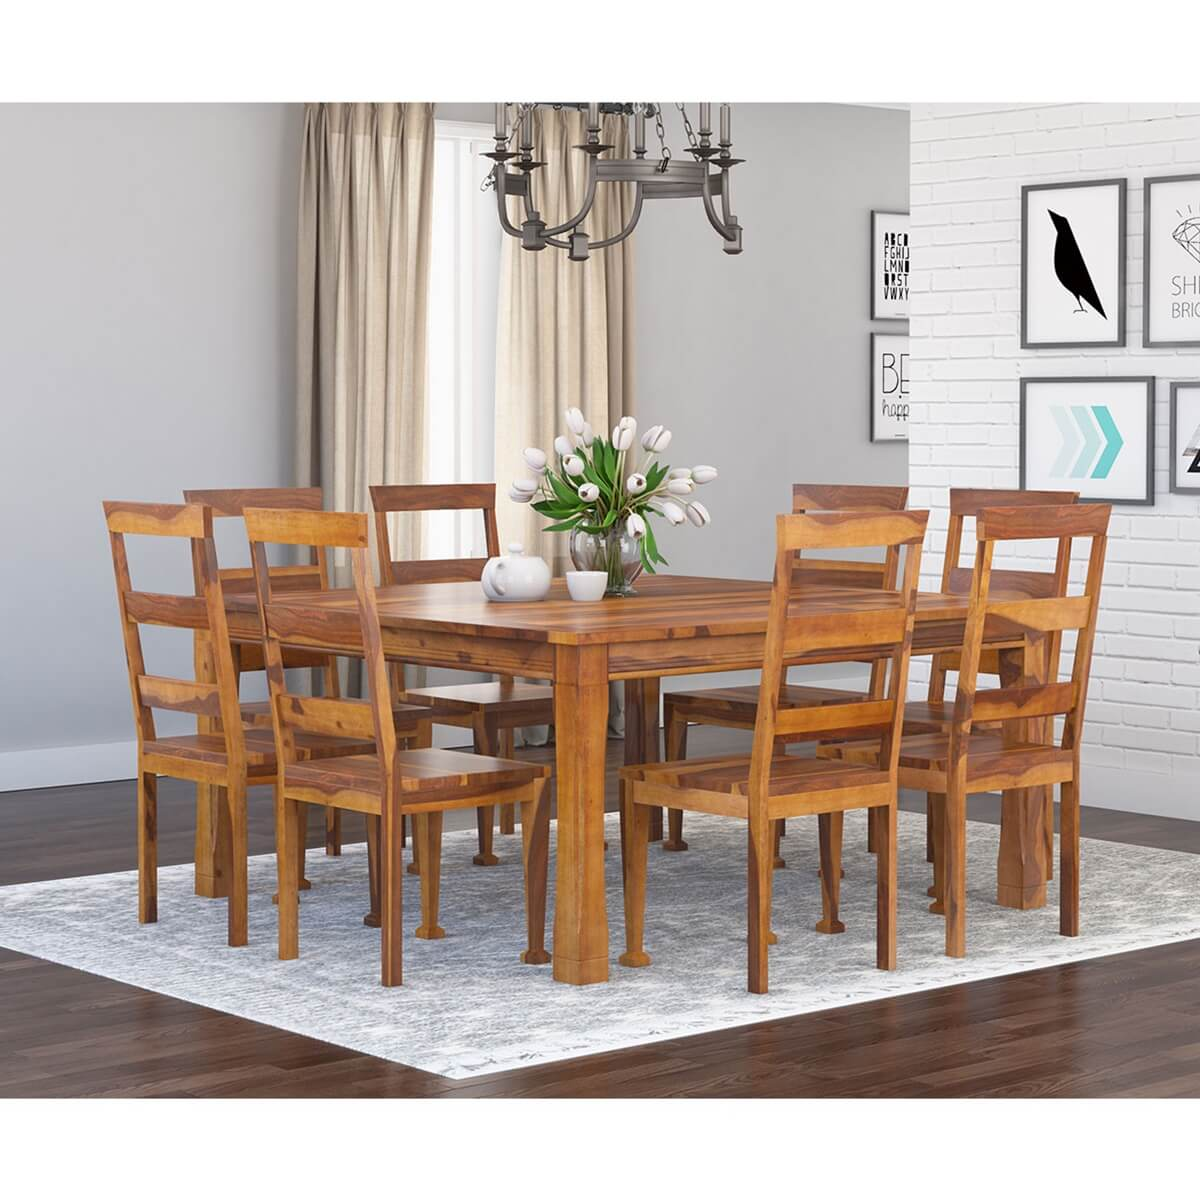 Appalachian Wood Rustic Square 9Pc Dining Table and Chair